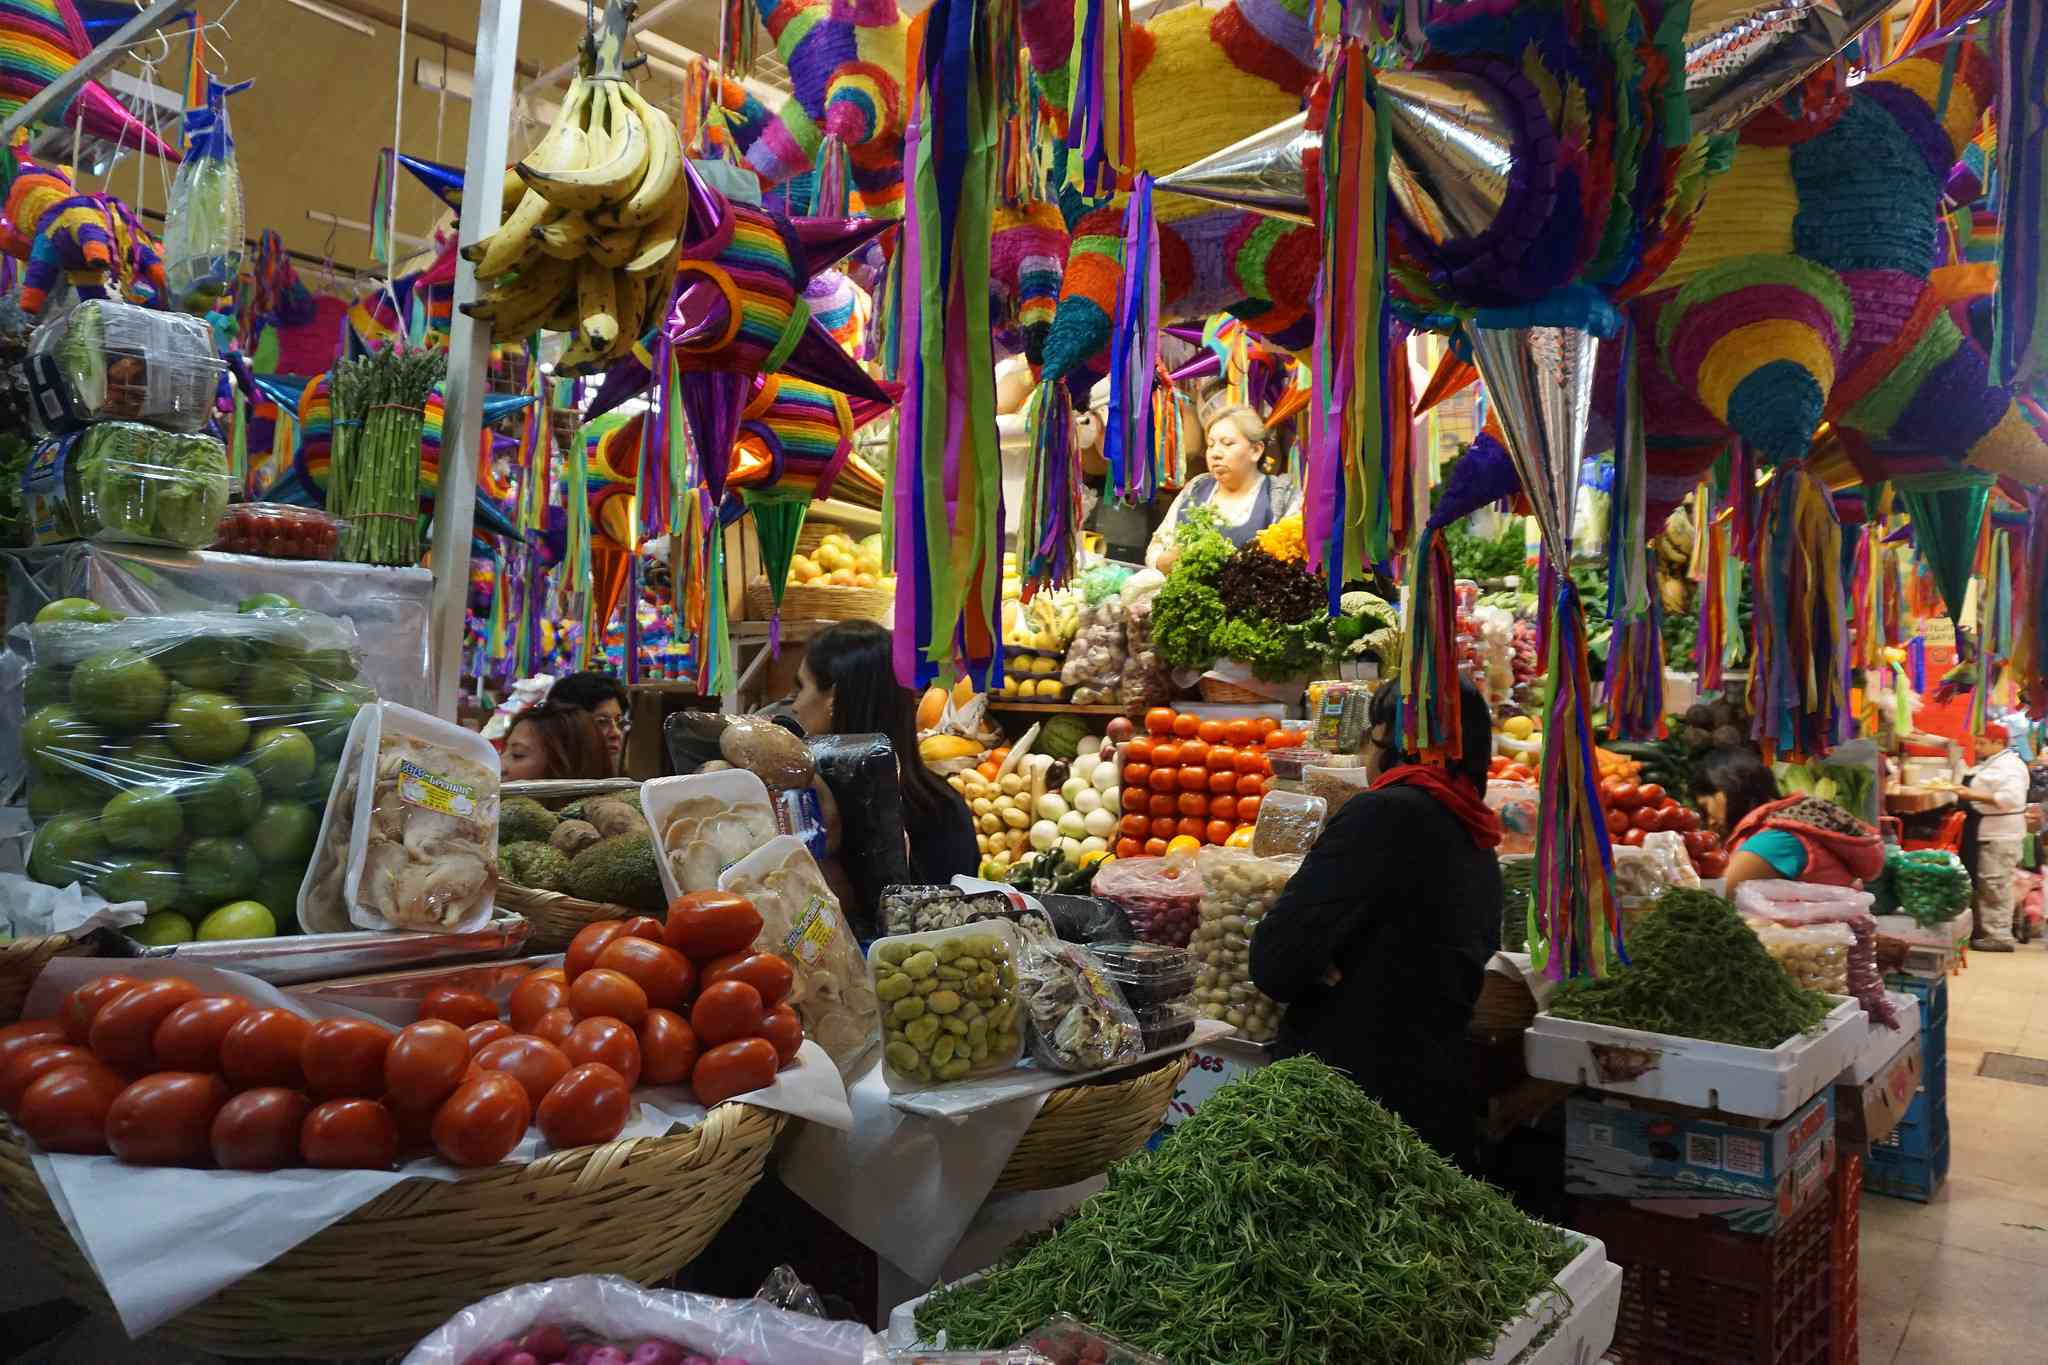 piles of fresh produce in a market with colorful piñatas overhead